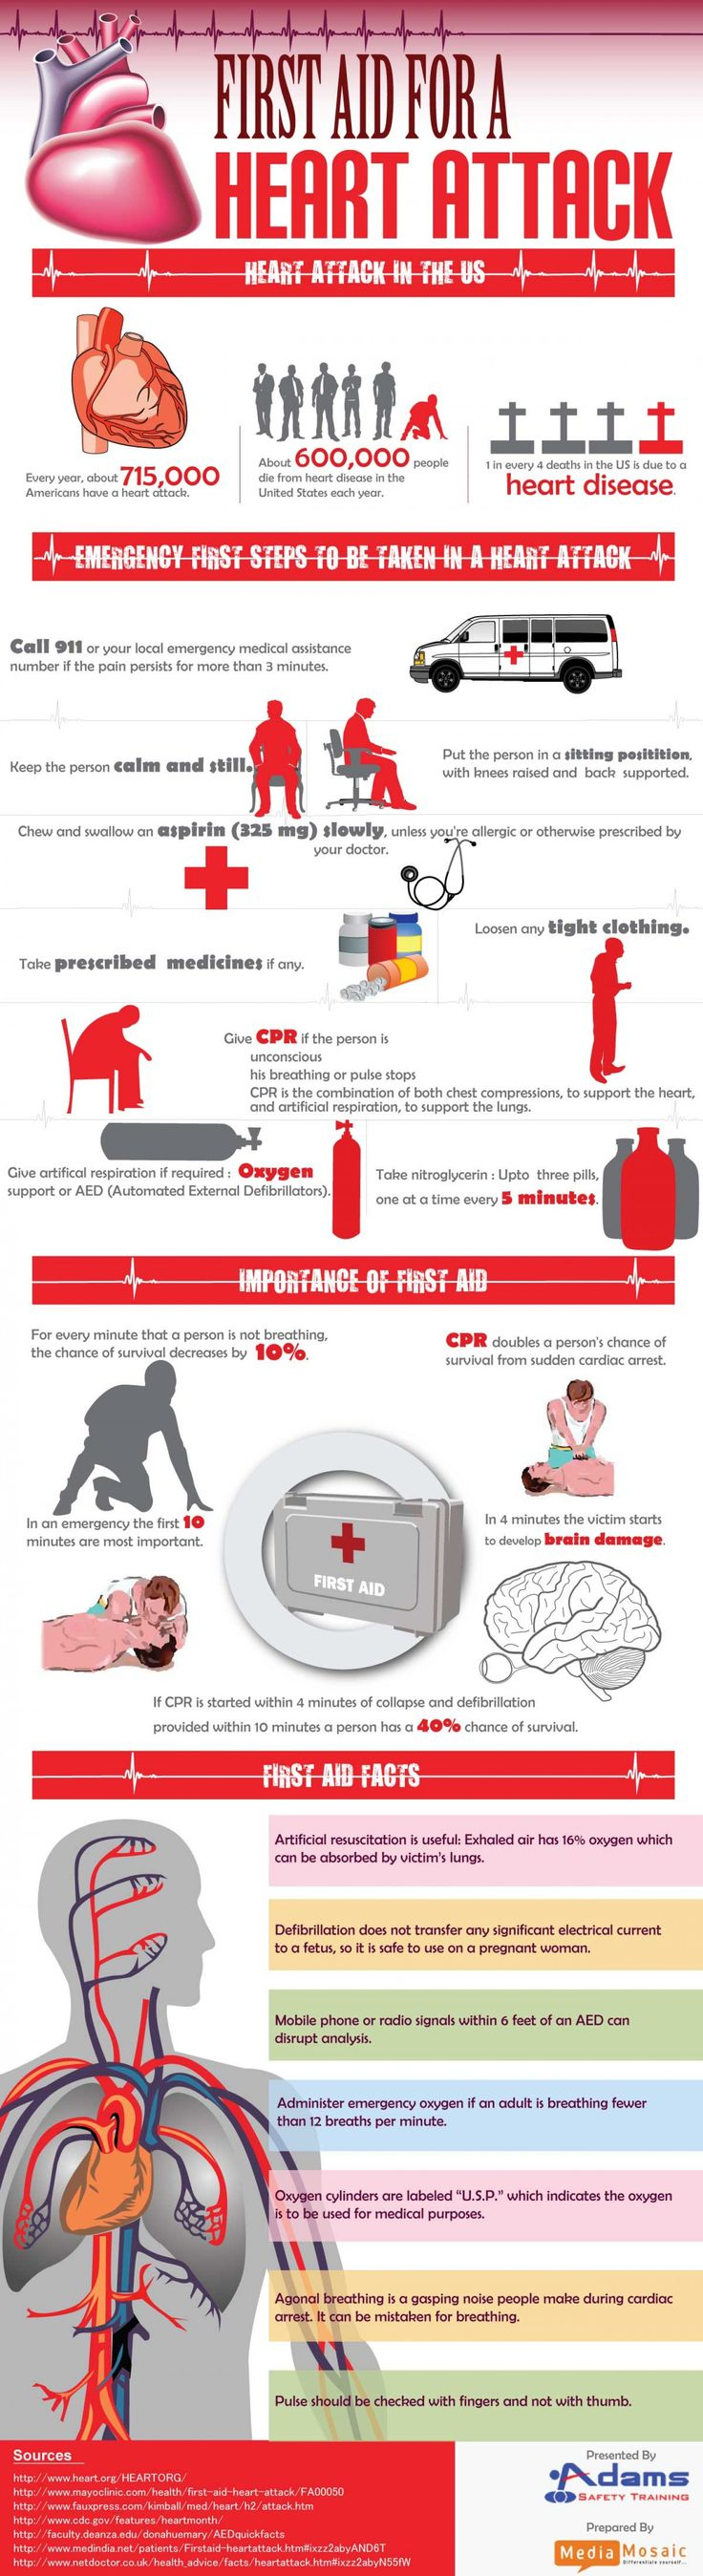 First Aid For A Heart Attack Infographic